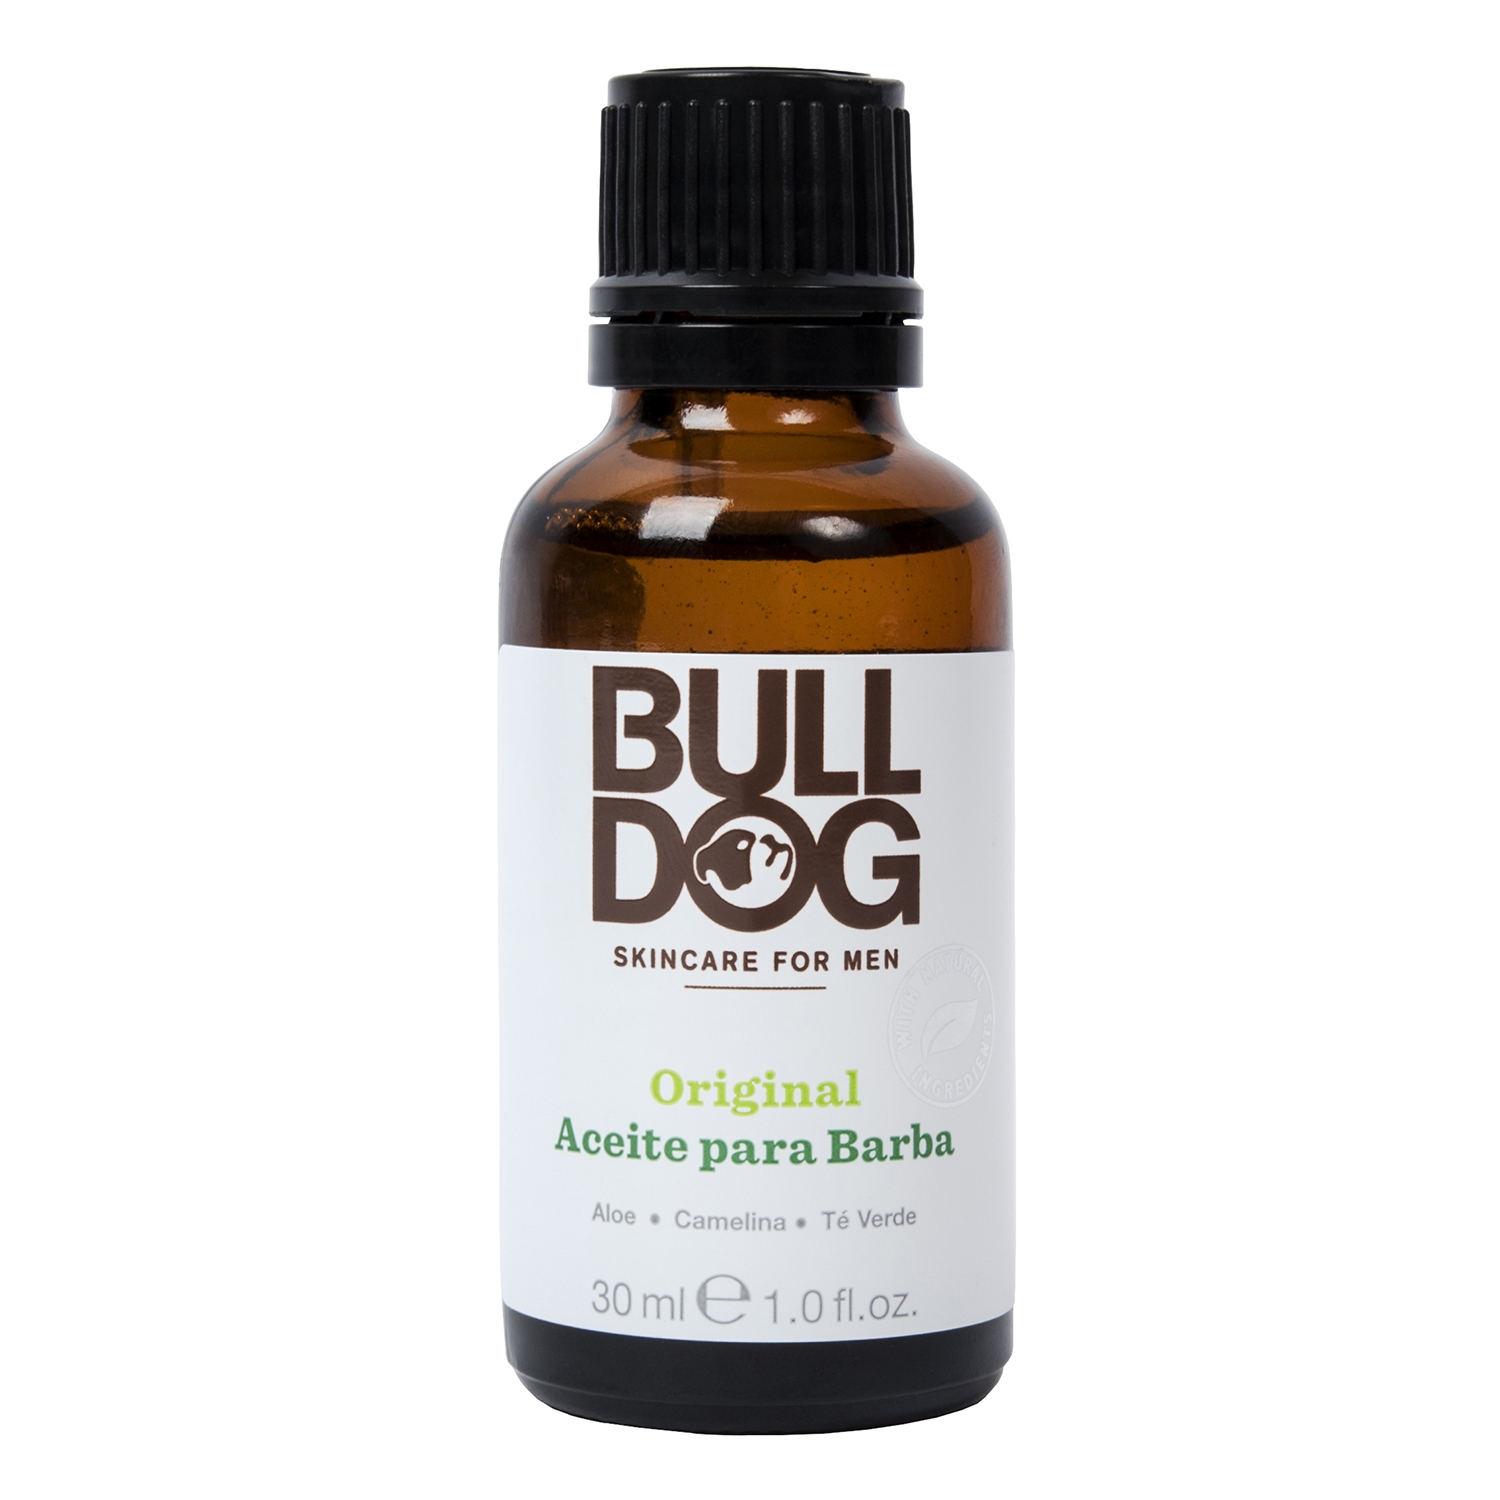 Aceite para barba original Bulldog 30 ml.